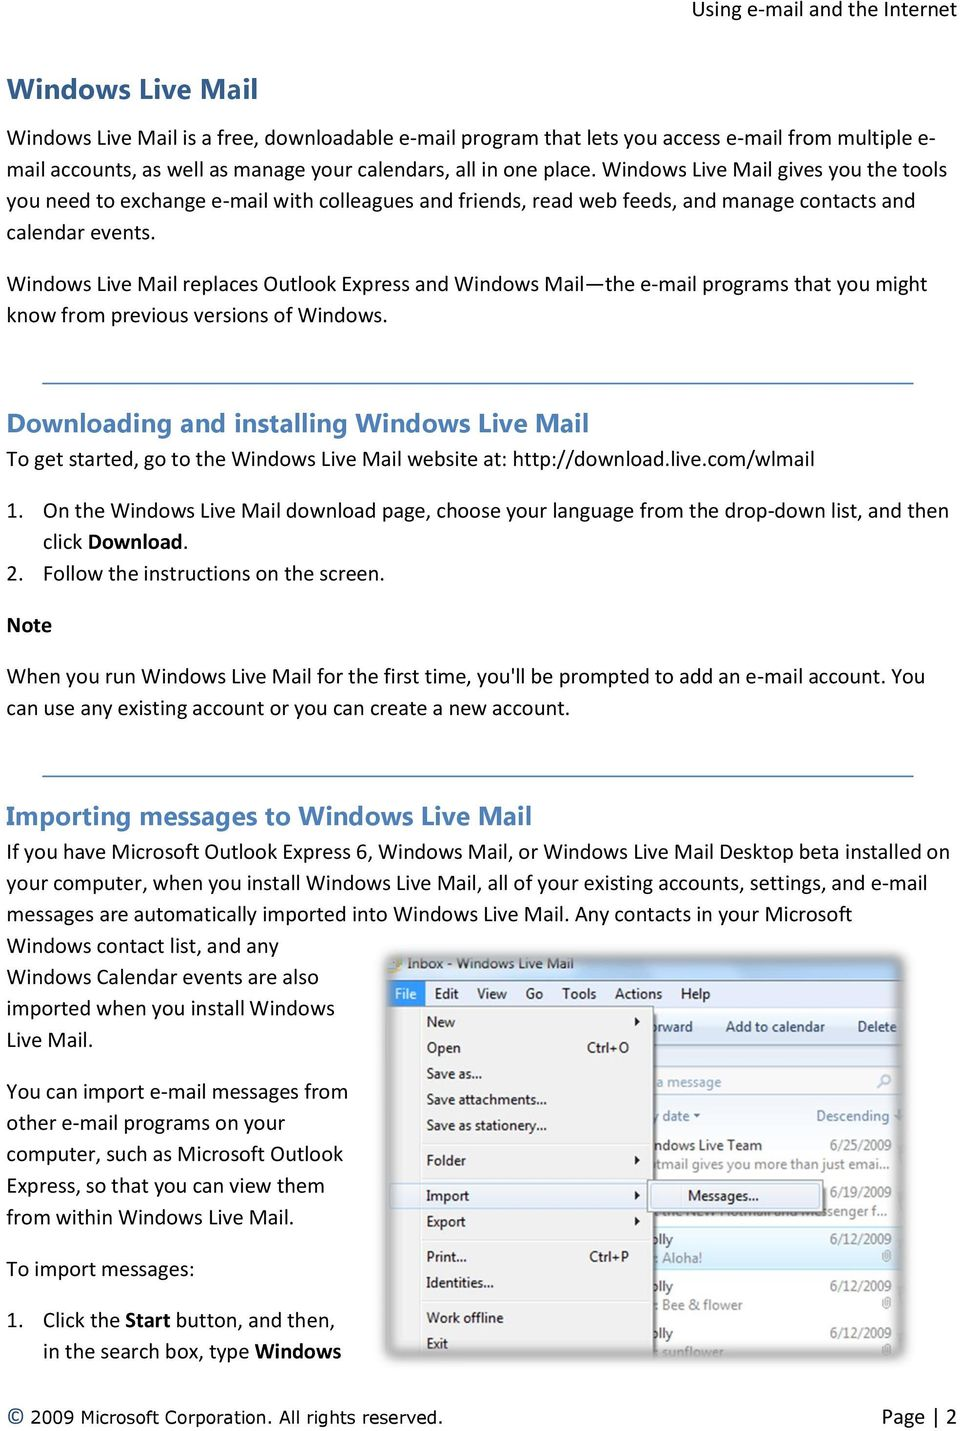 Windows Live Mail replaces Outlook Express and Windows Mail the e-mail programs that you might know from previous versions of Windows.